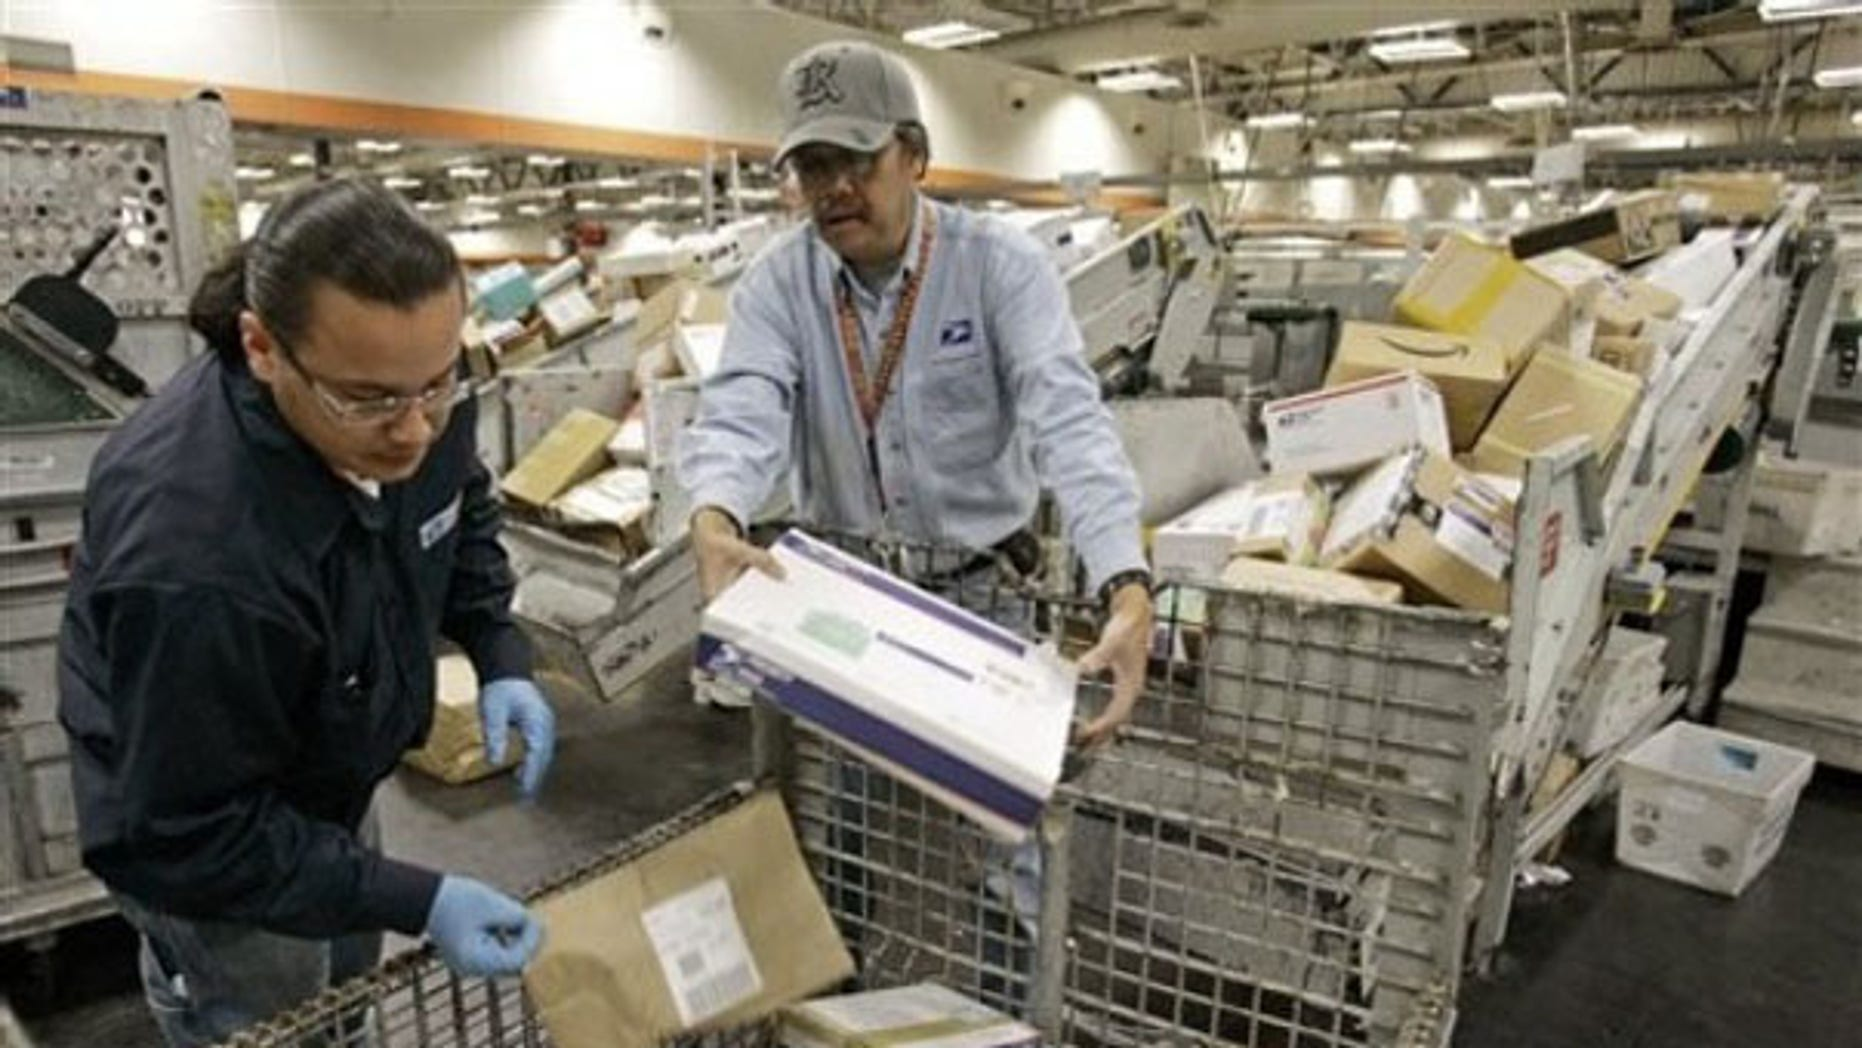 FILE: U.S. Postal Service mail handlers sort packages at the USPS San Francisco center.